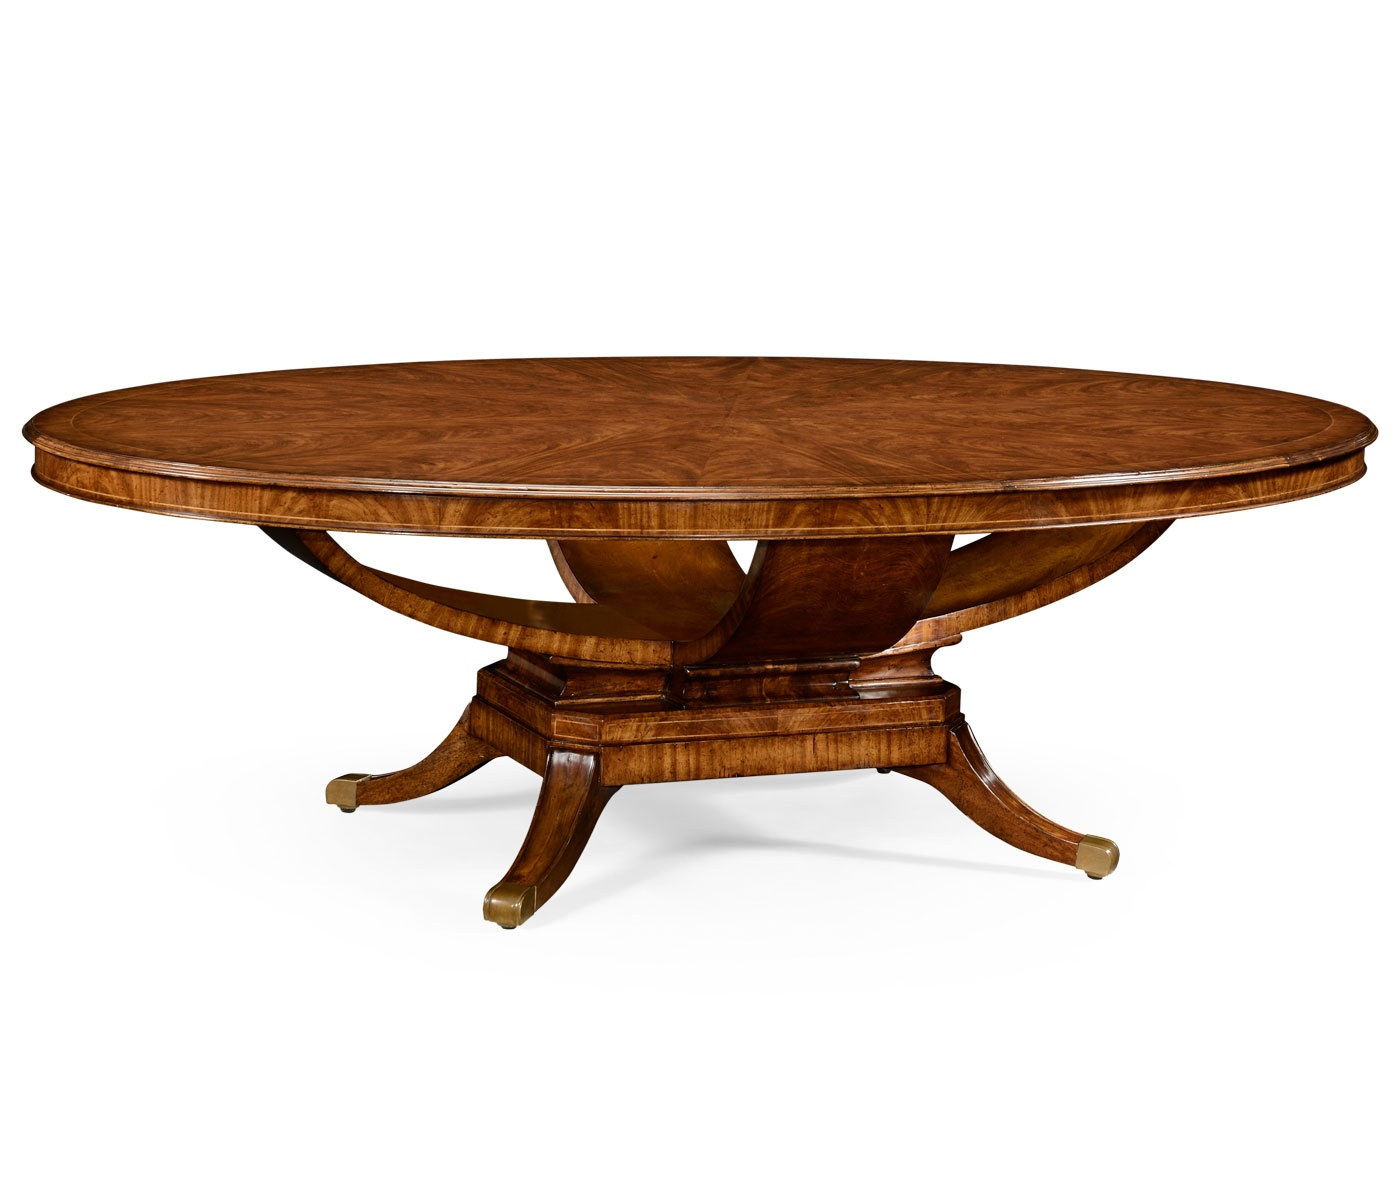 8 seater oval dining table walnut swanky interiors - Seater dining tables ...